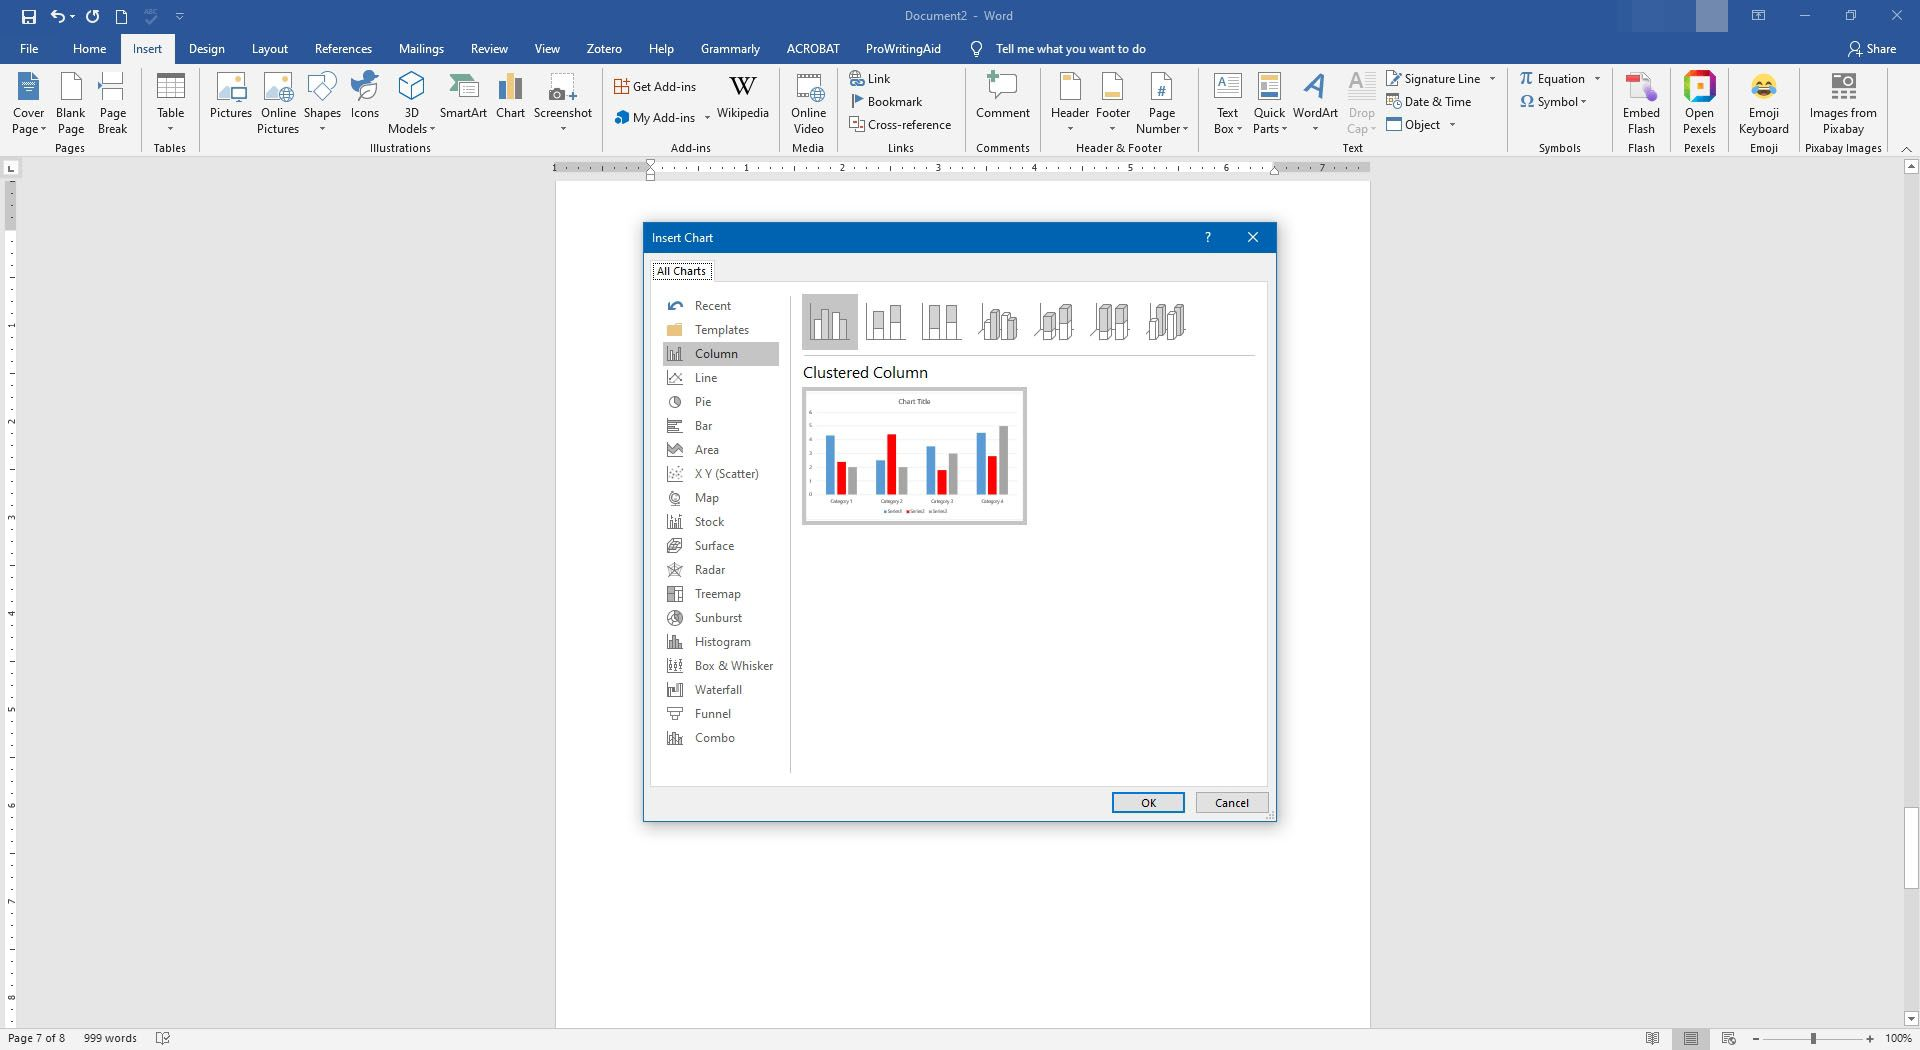 Different chart options in Microsoft Word.